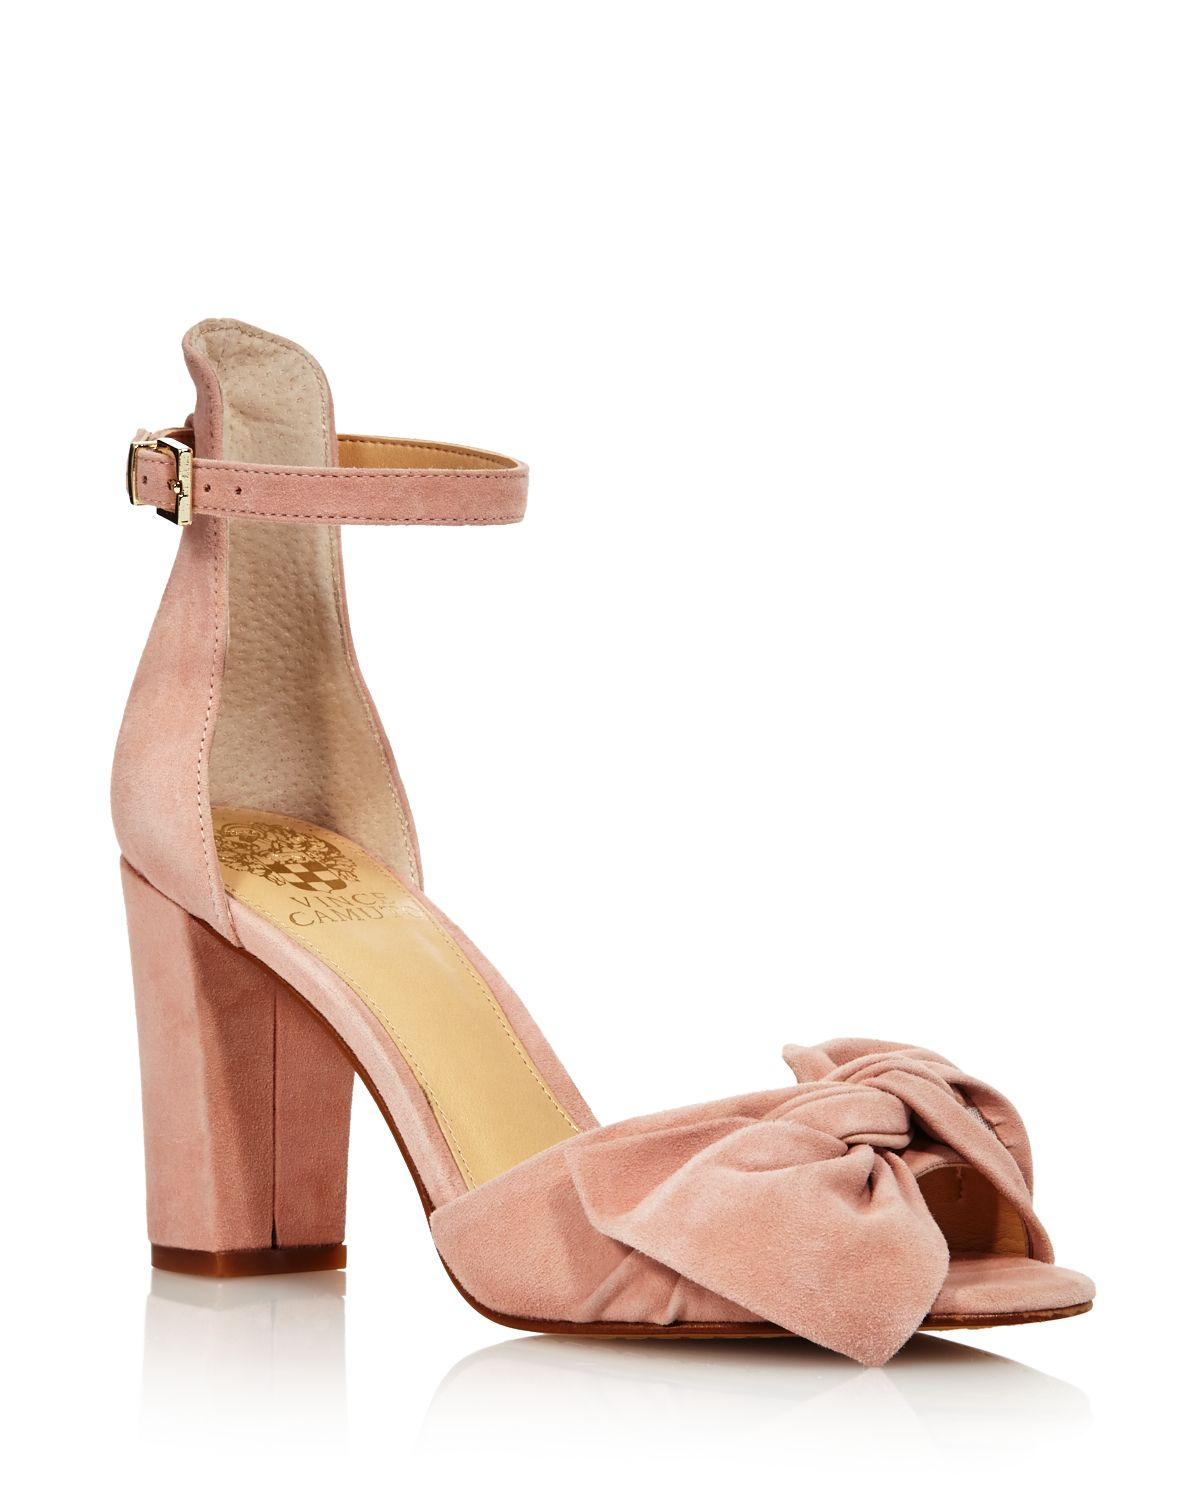 Vince Camuto Women's Carrelen Suede Bow Block Heel Sandals - 100% Exclusive